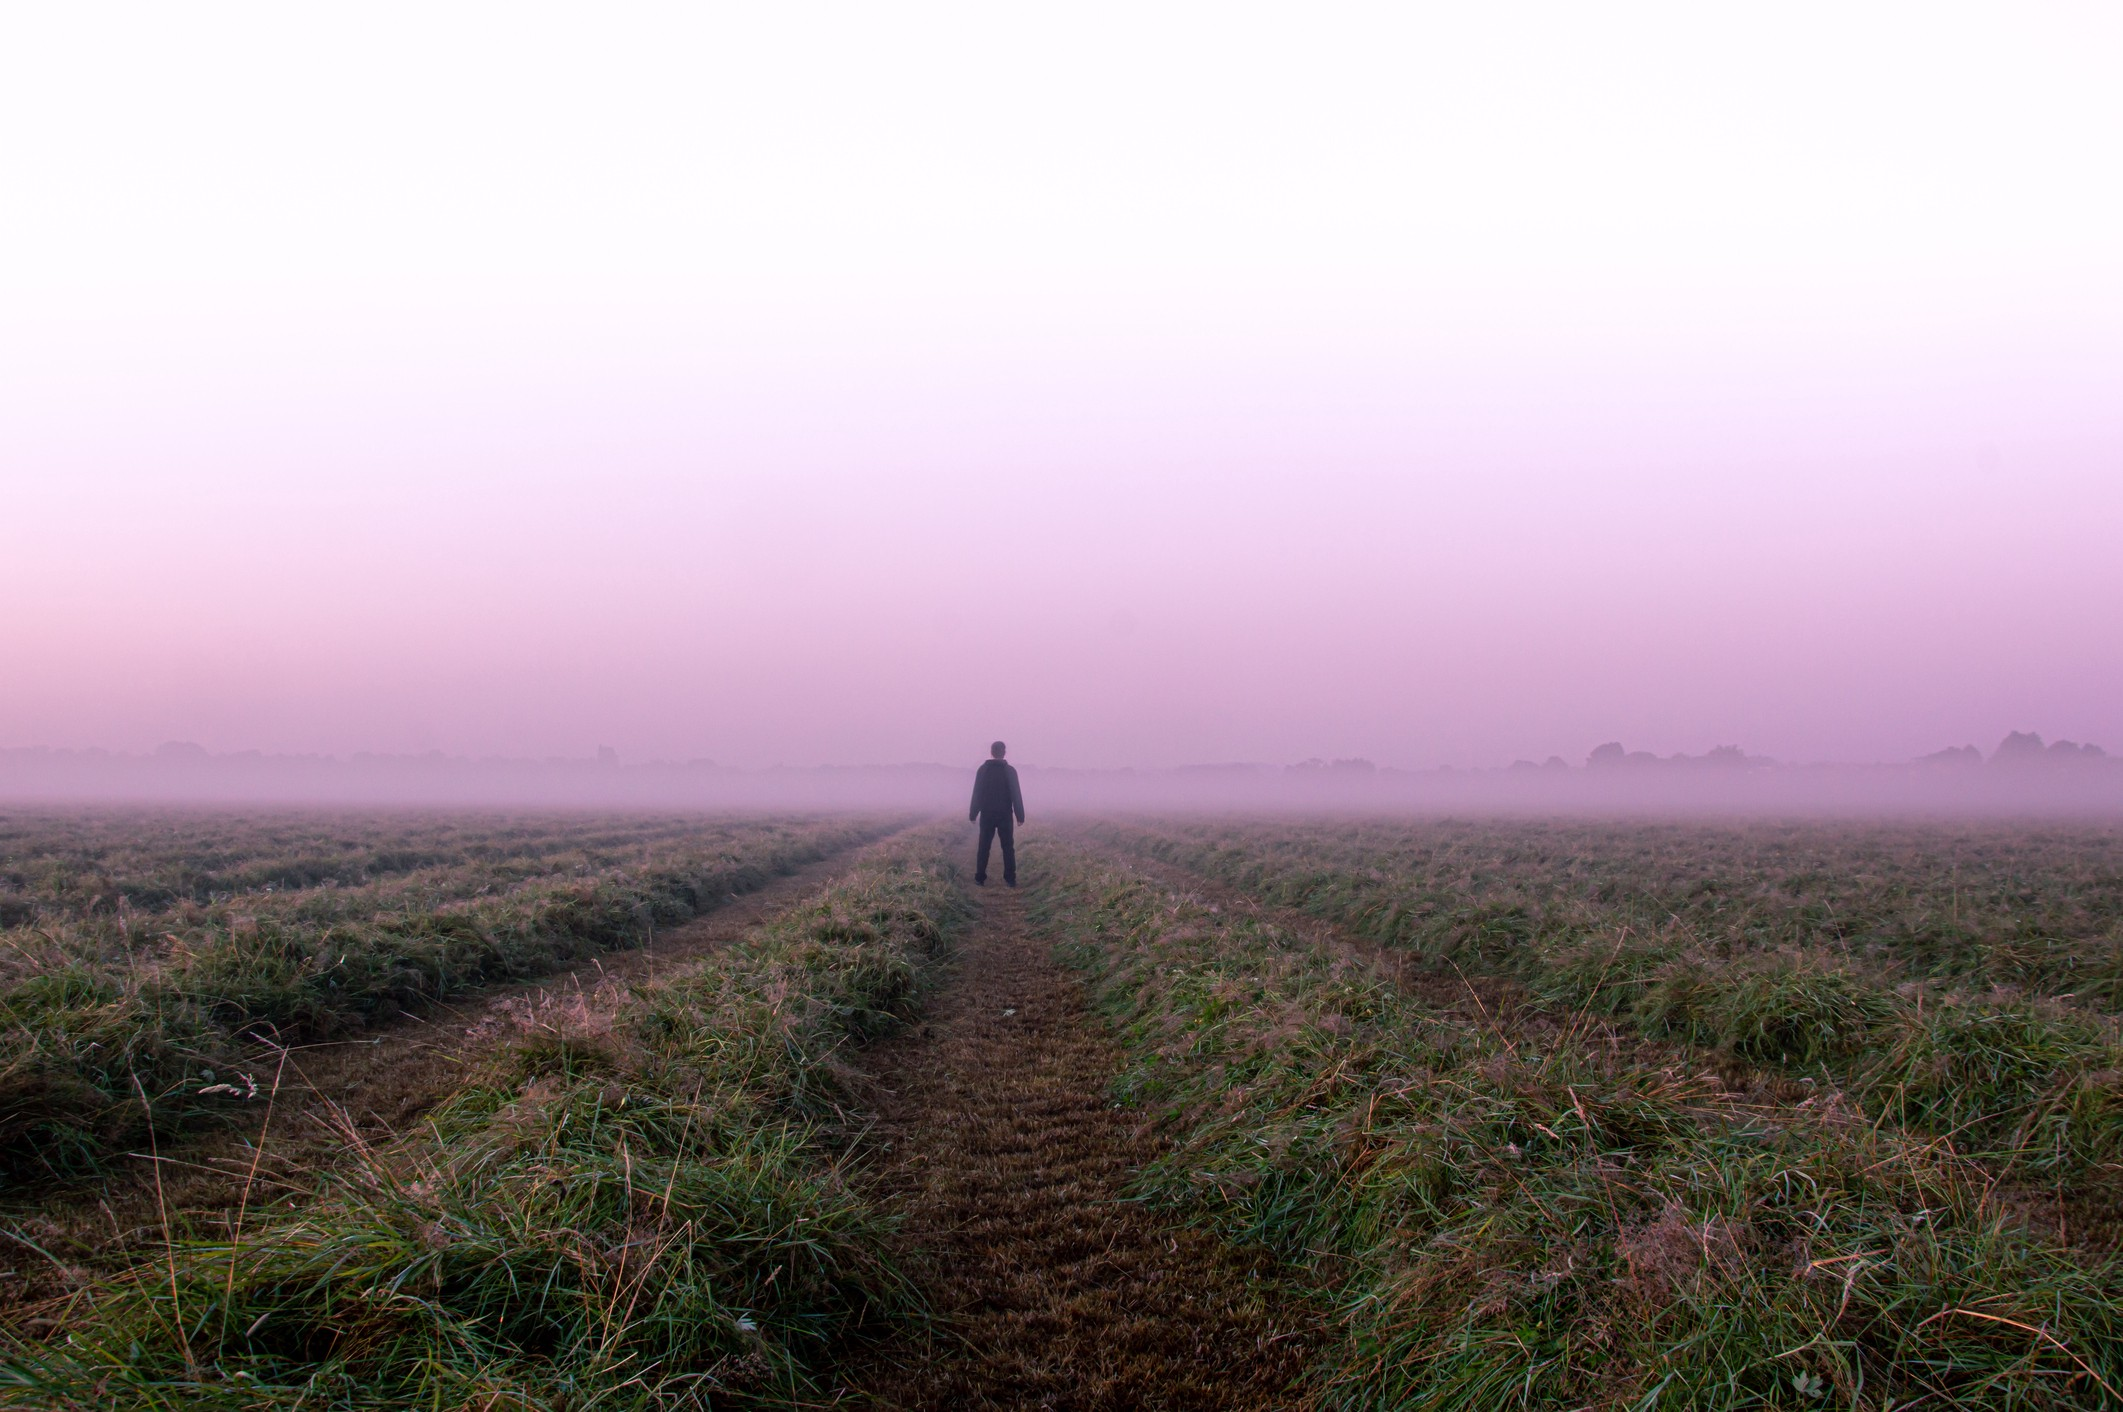 A mysterious lone figure standing in a field on a beautiful early misty morning.